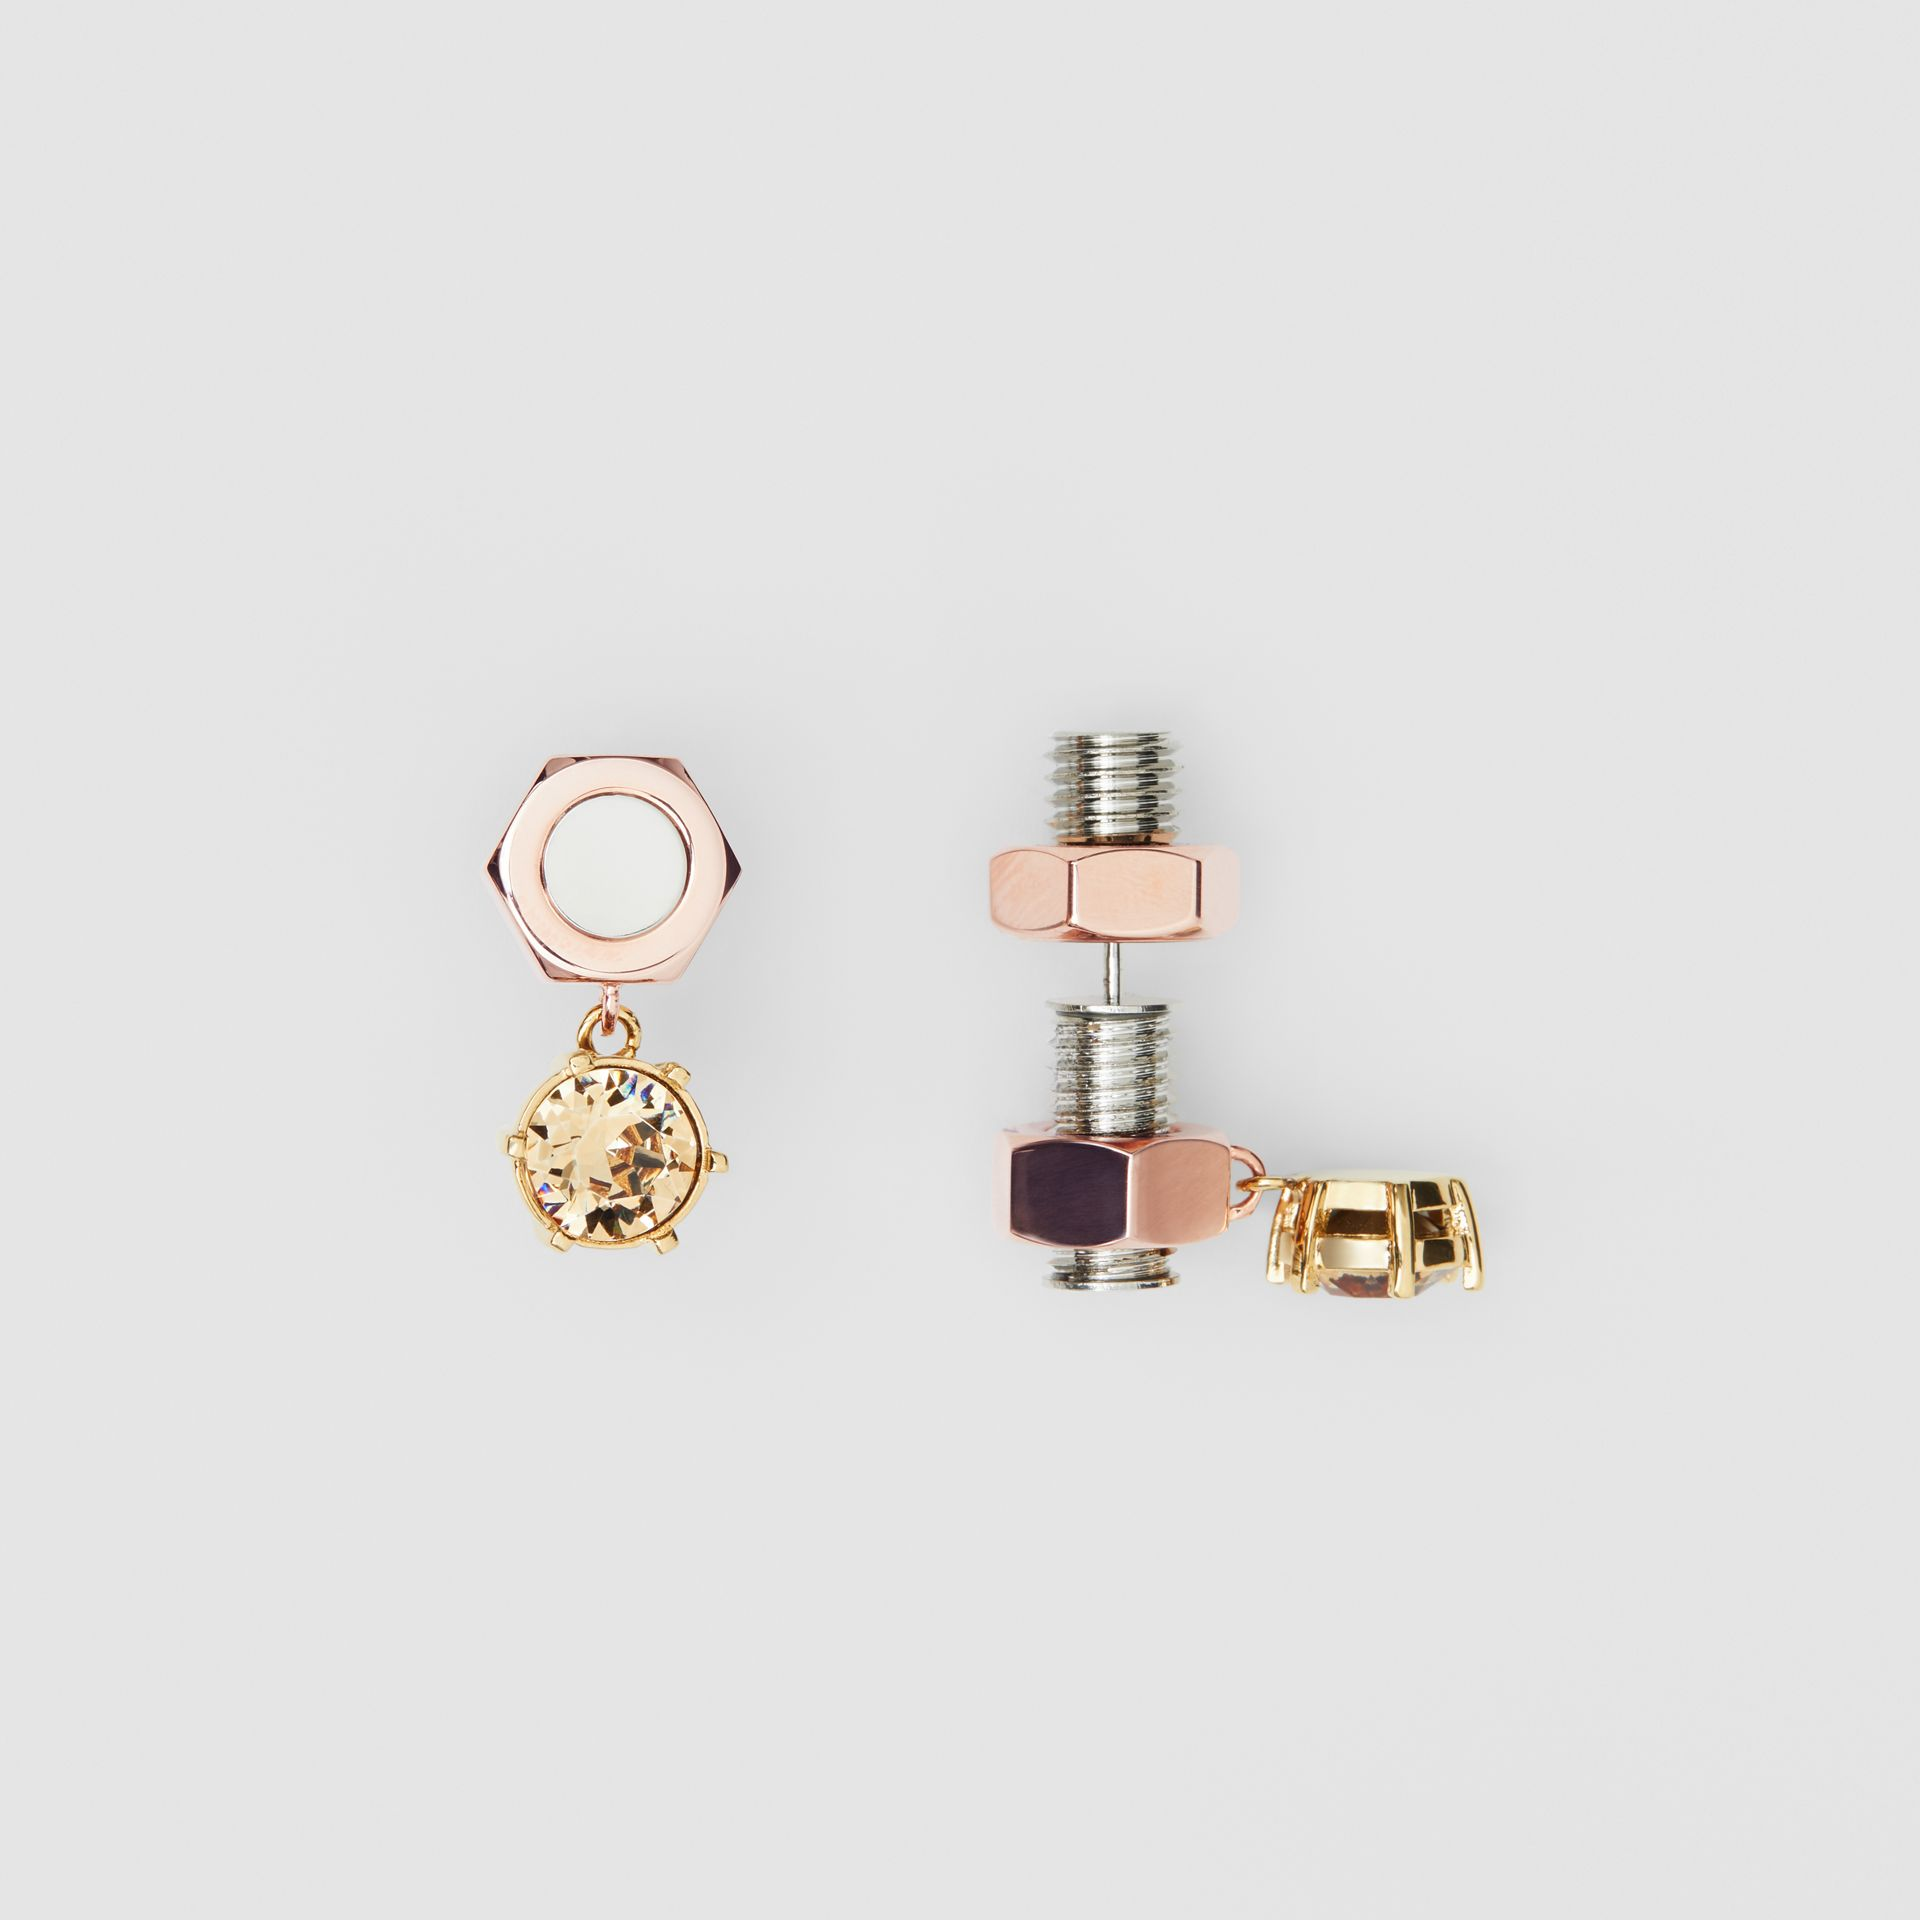 Crystal Charm Rose Gold-plated Nut and Bolt Earrings in Gold/palladium - Women | Burberry United Kingdom - gallery image 2